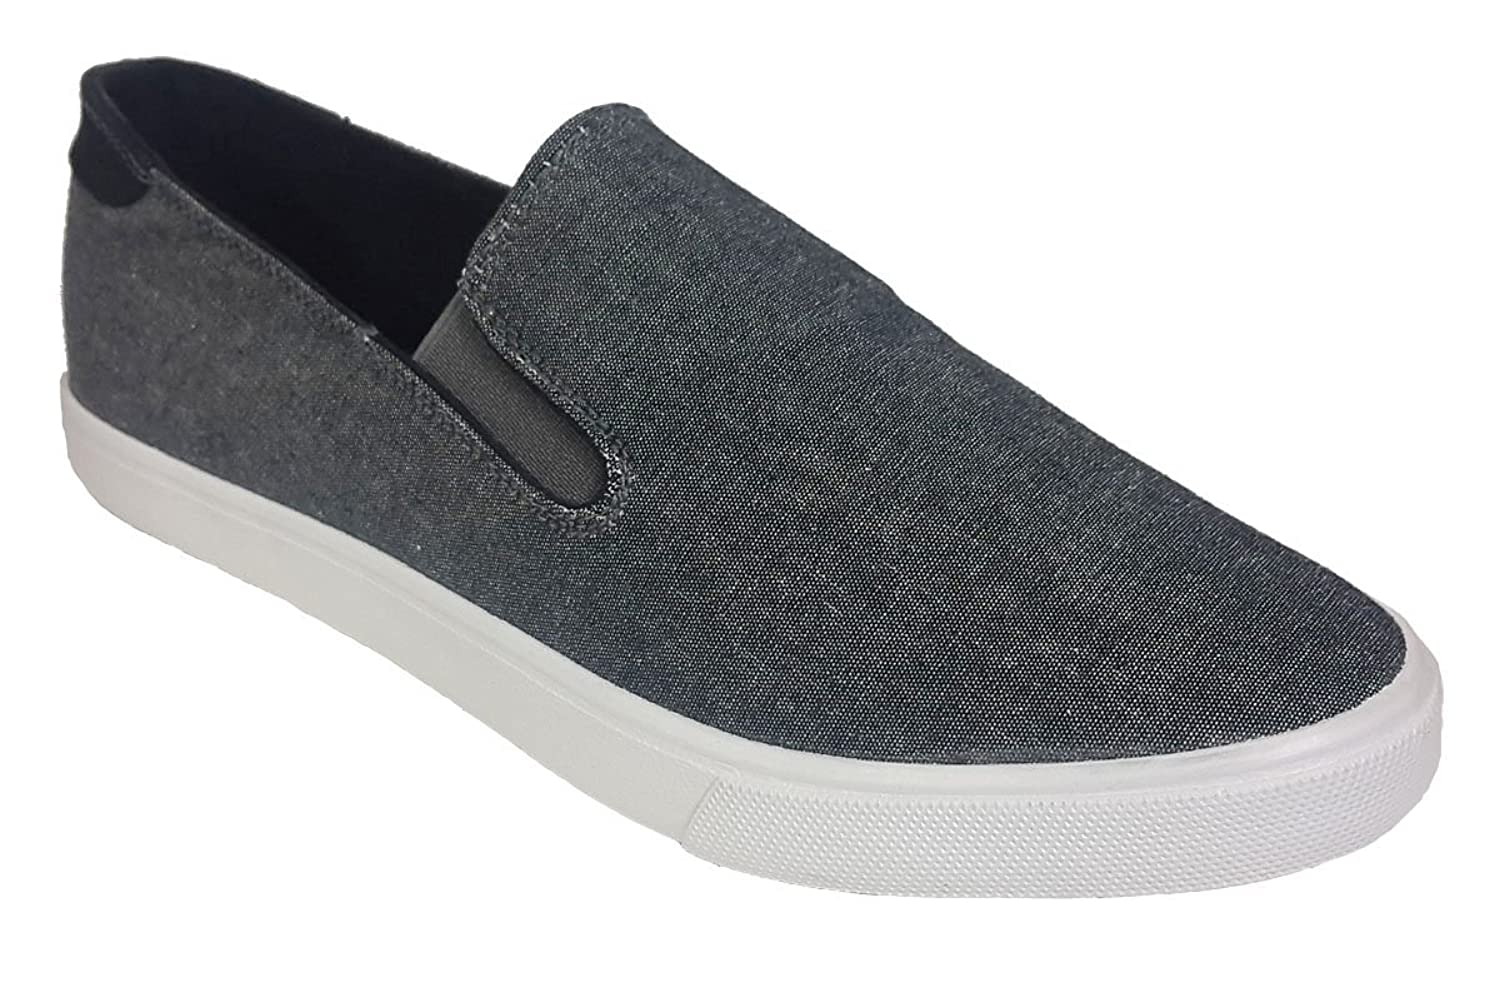 Elegant Men's Casual Canvas Charcoal Black Slip On Sneakers by Steven Ella